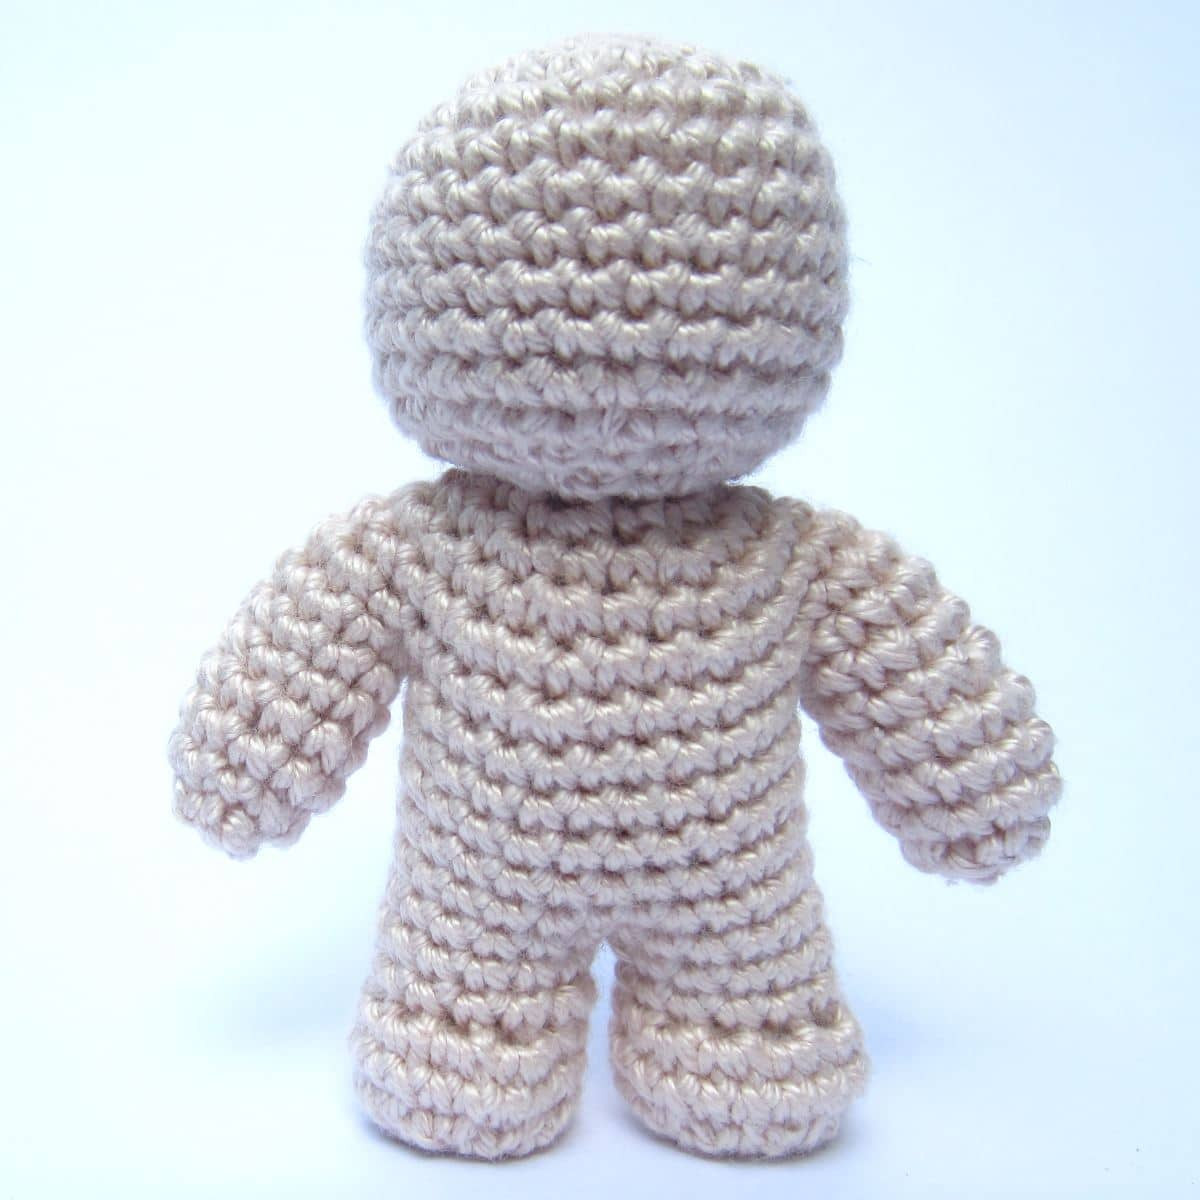 Crochet One Piece Beautiful E Piece Crochet Doll Pattern Supergurumi Of Marvelous 47 Pictures Crochet One Piece